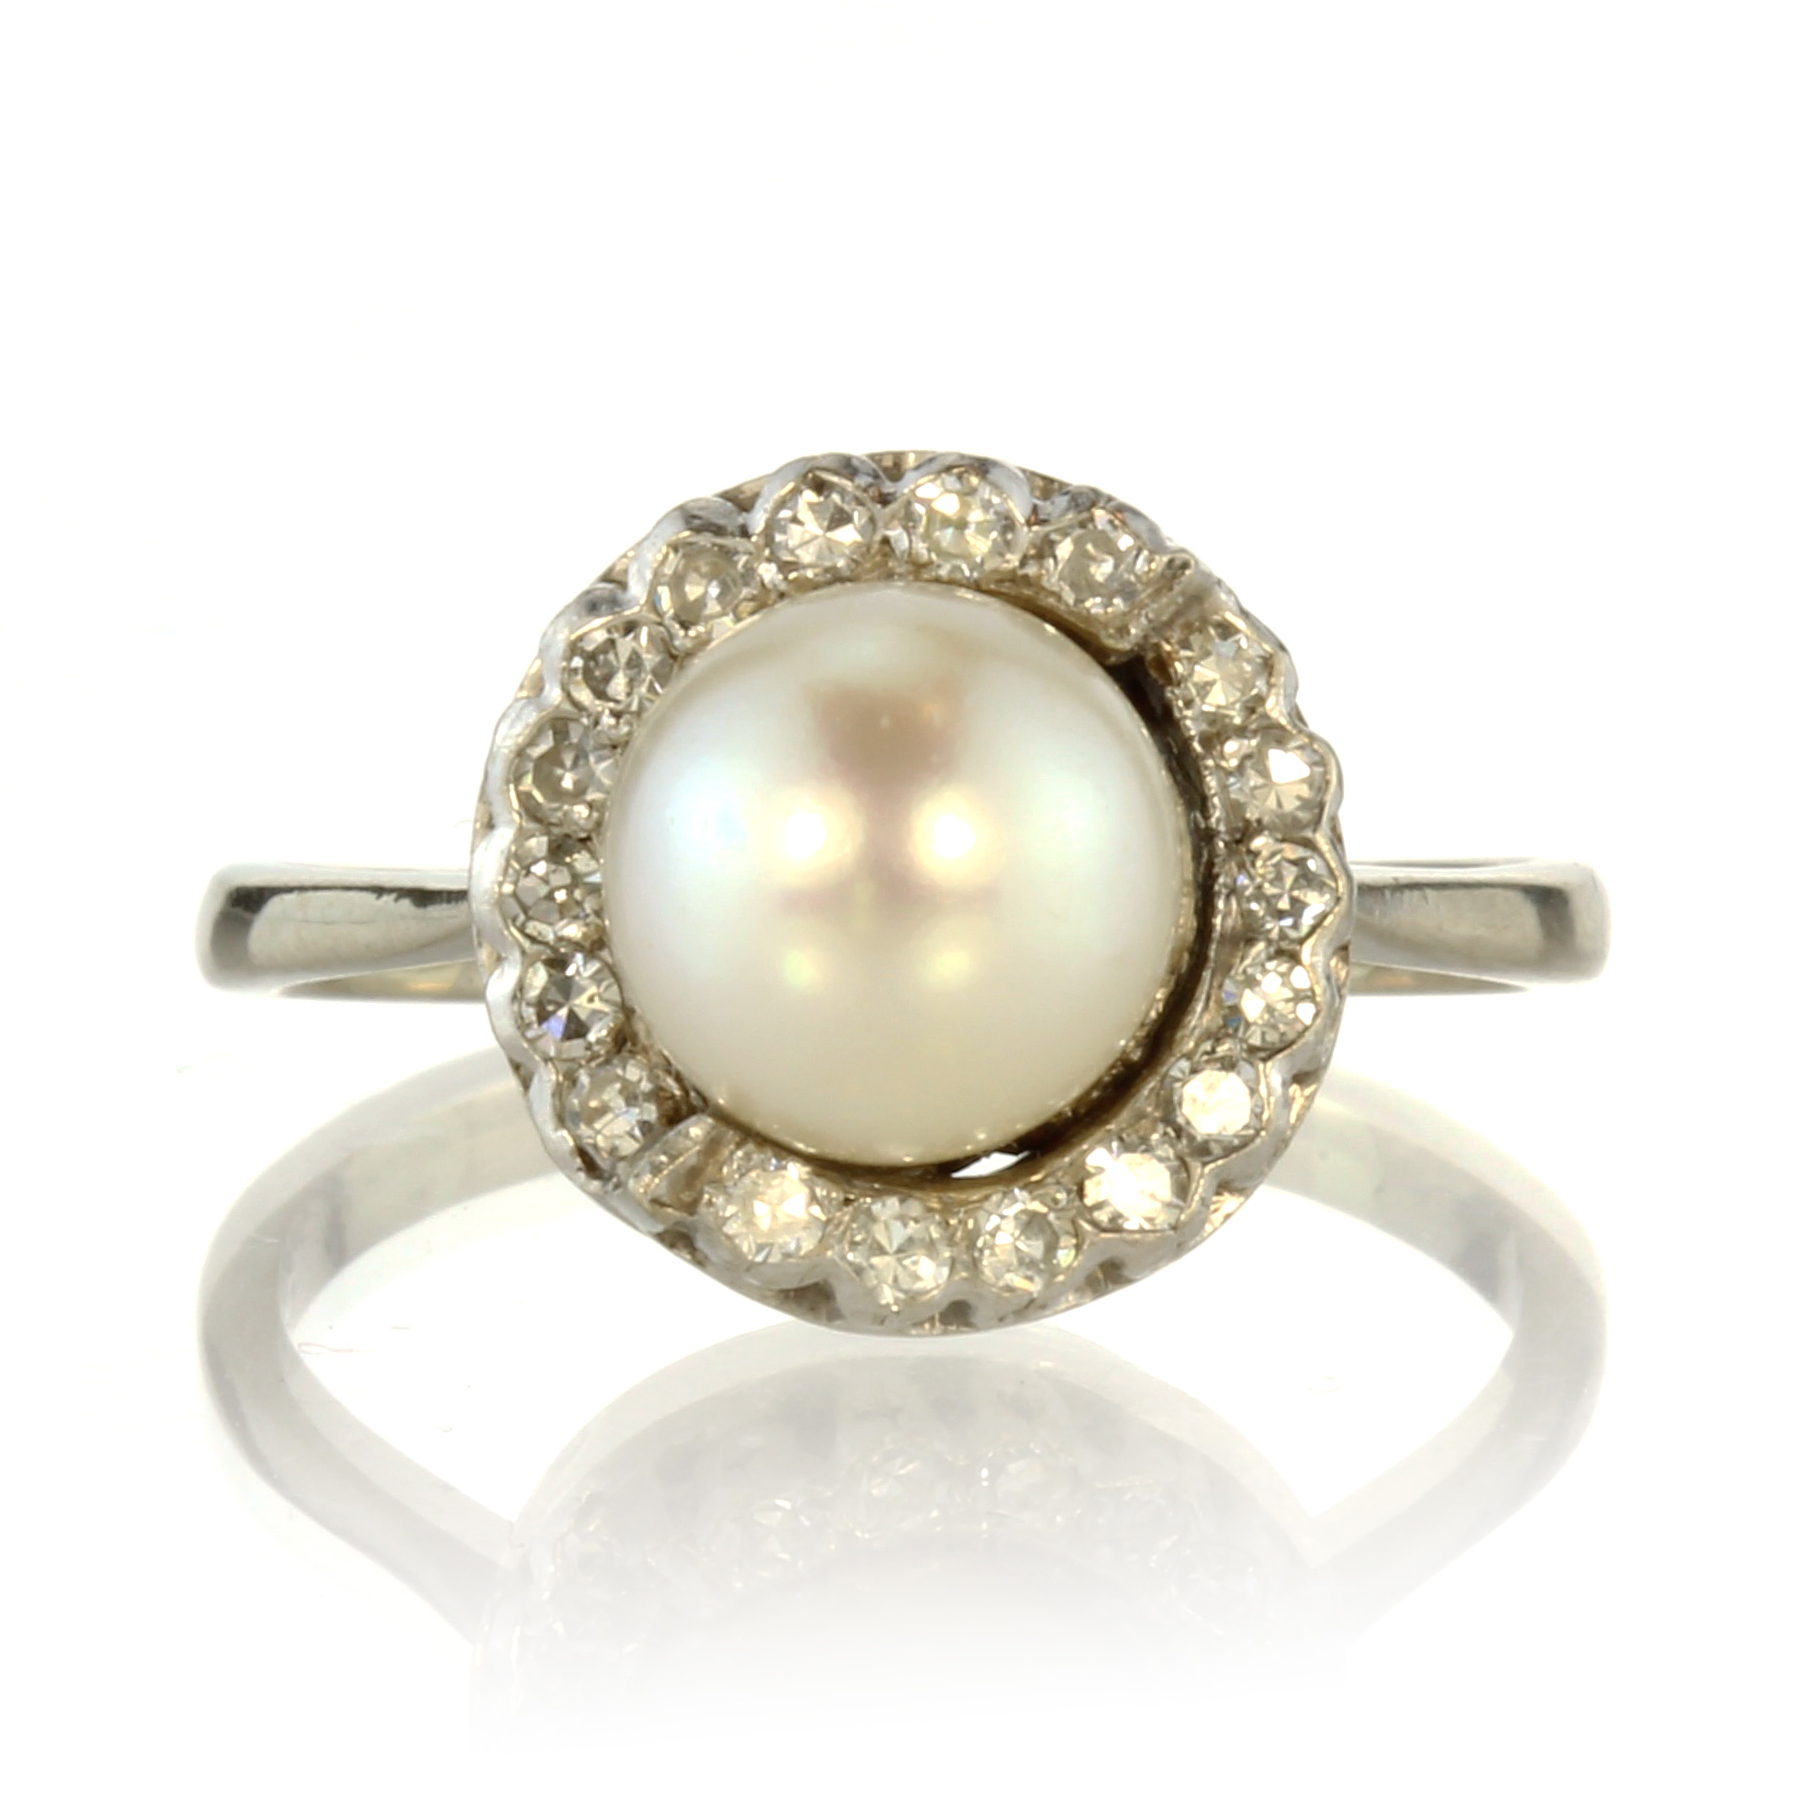 Los 29 - A pearl and diamond cluster dress ring in 18ct white gold set with a central pearl of 8.2mm in